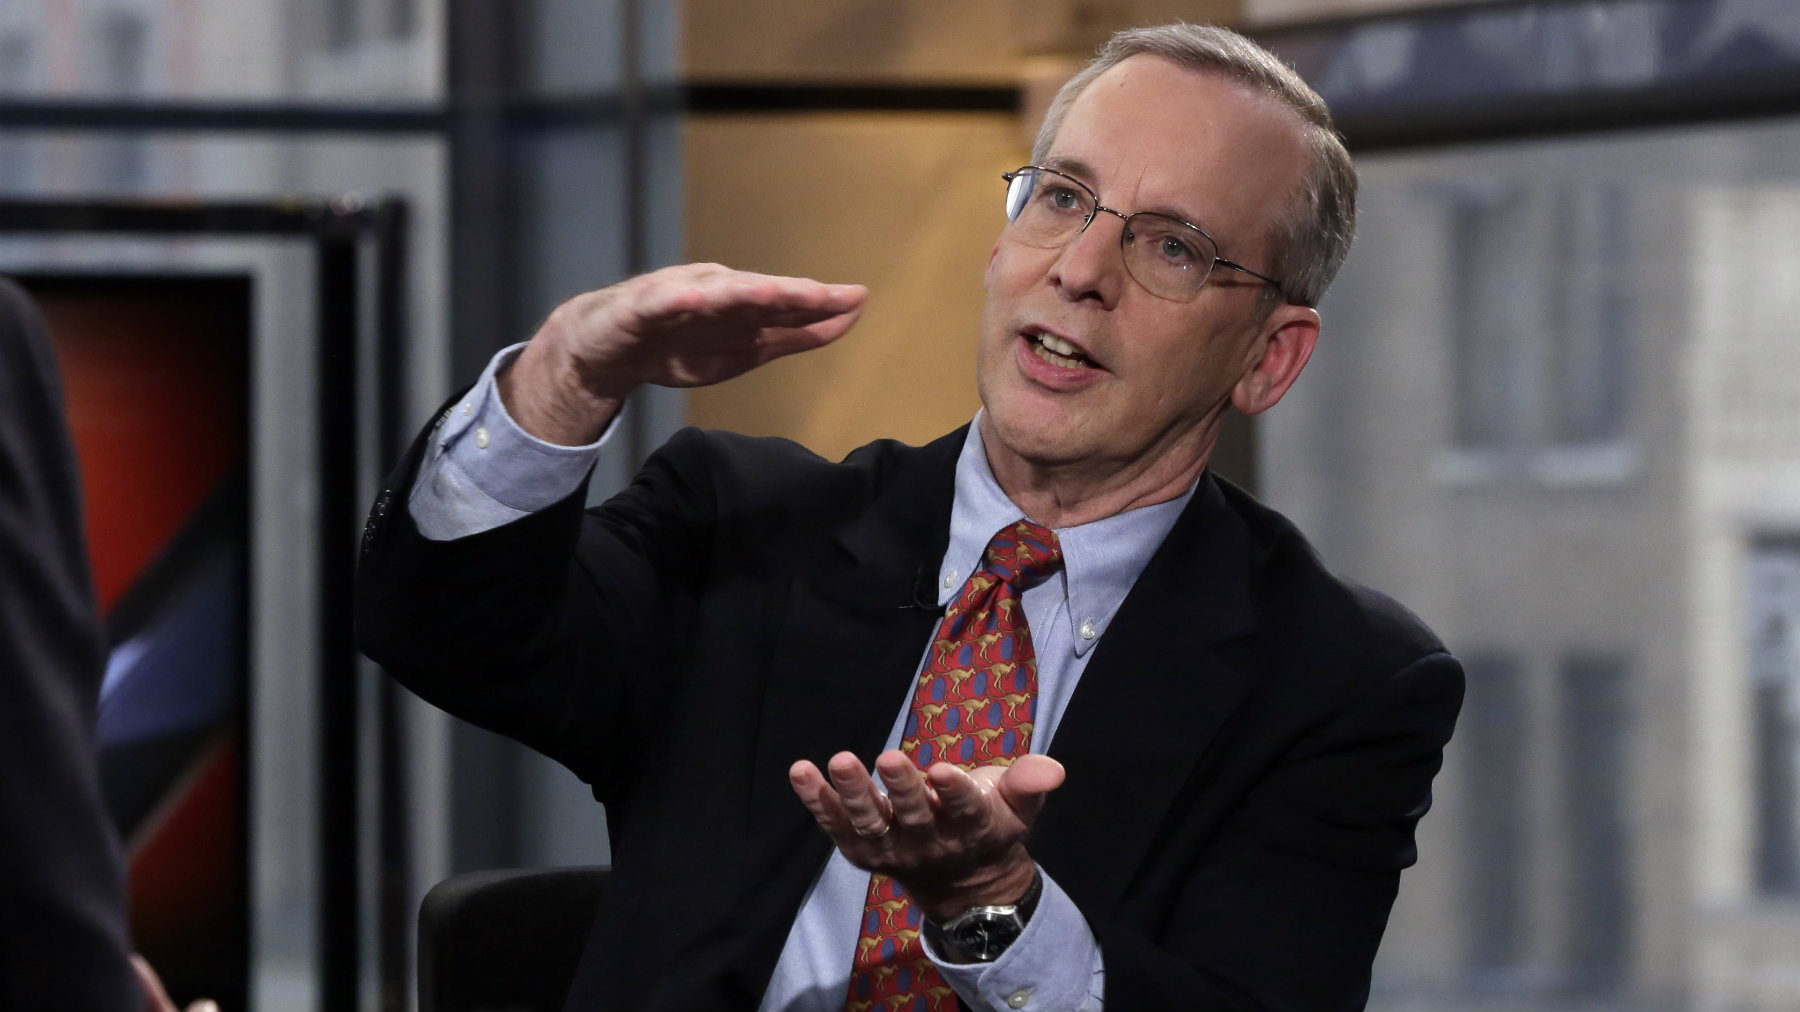 New York Federal Reserve President William Dudley pictured during an interview.